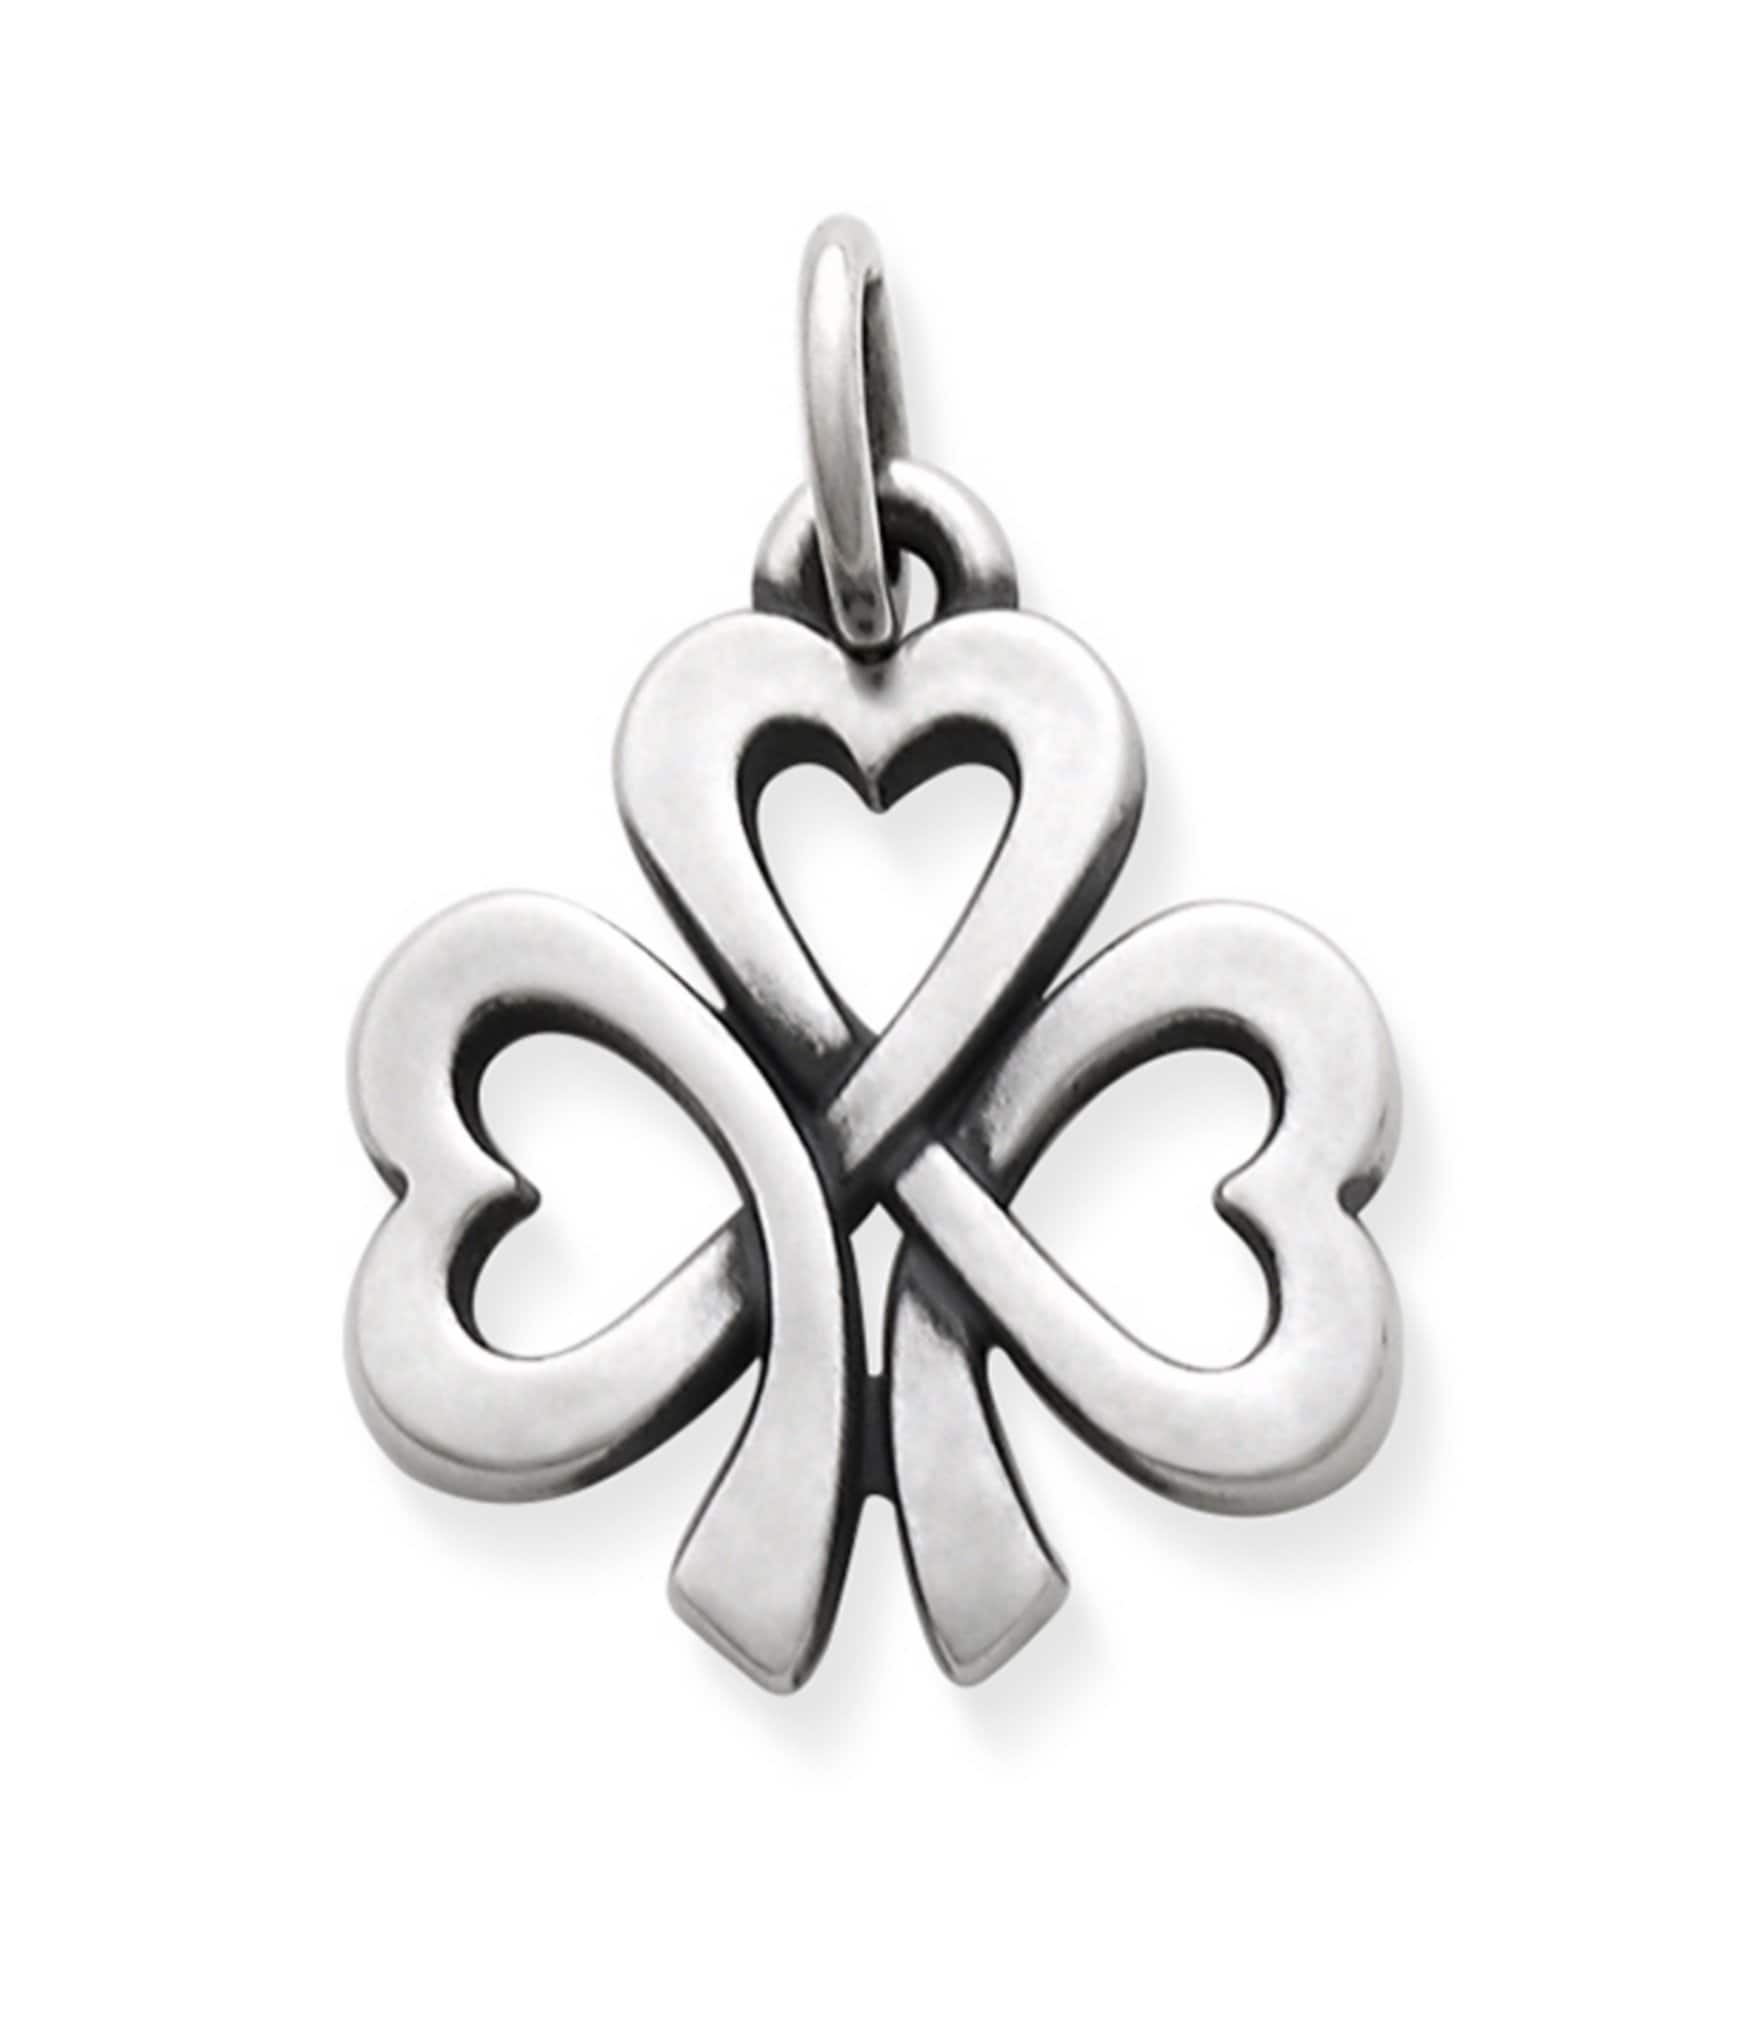 James Avery Shamrock Of Hearts Charm Dillards